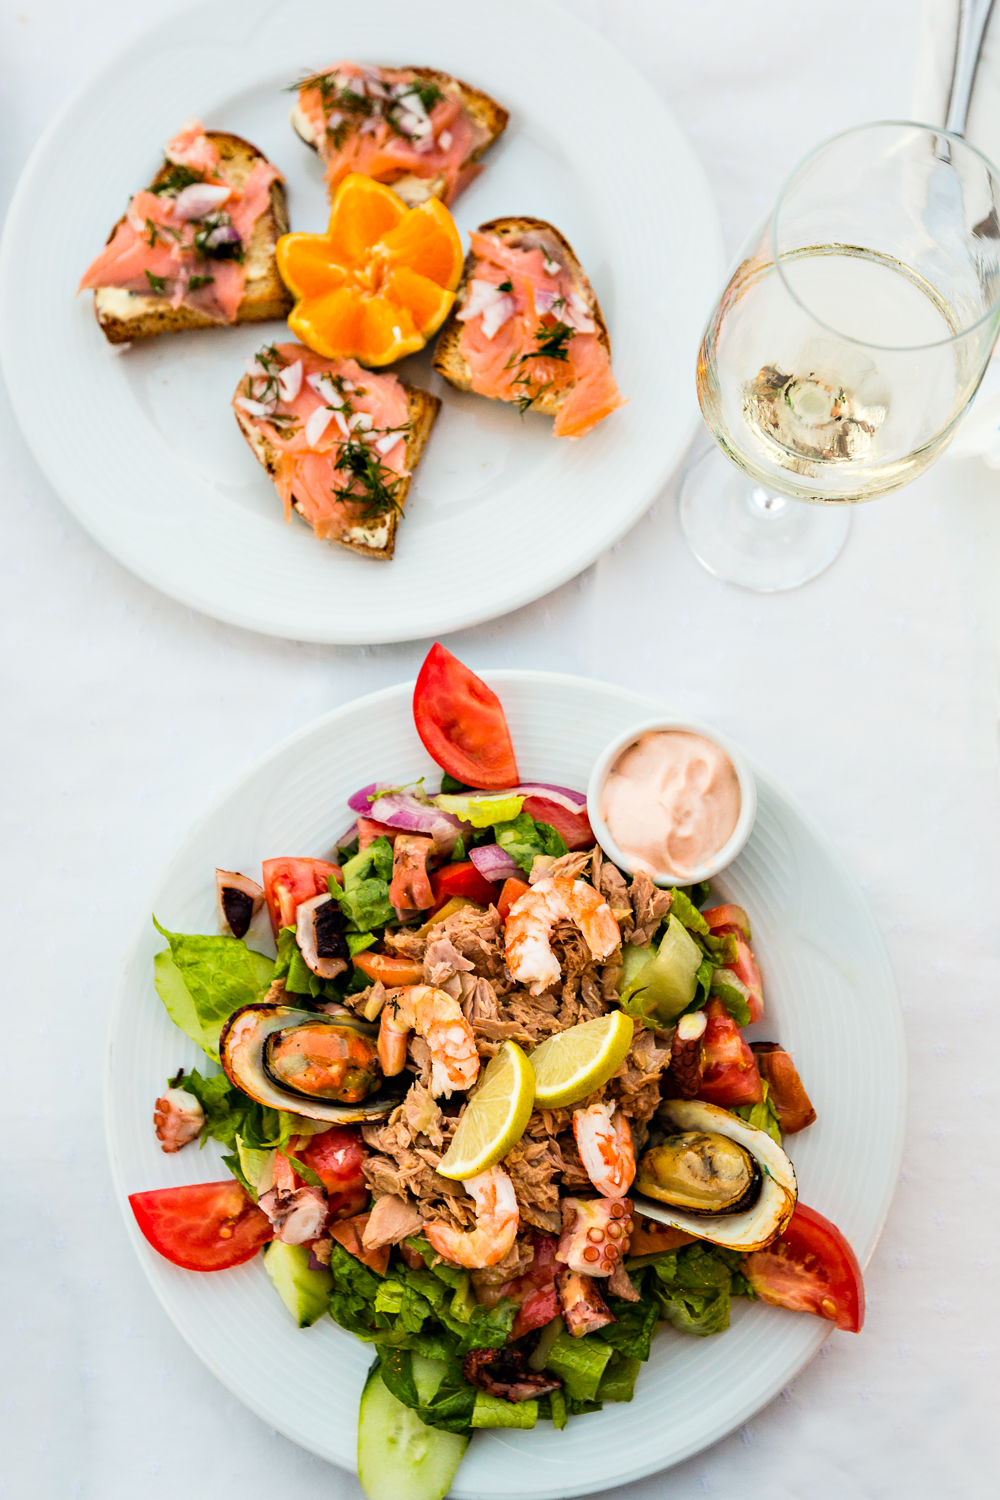 adventure-travel-photography-becky-brockie-greece-meal-seafood.jpg